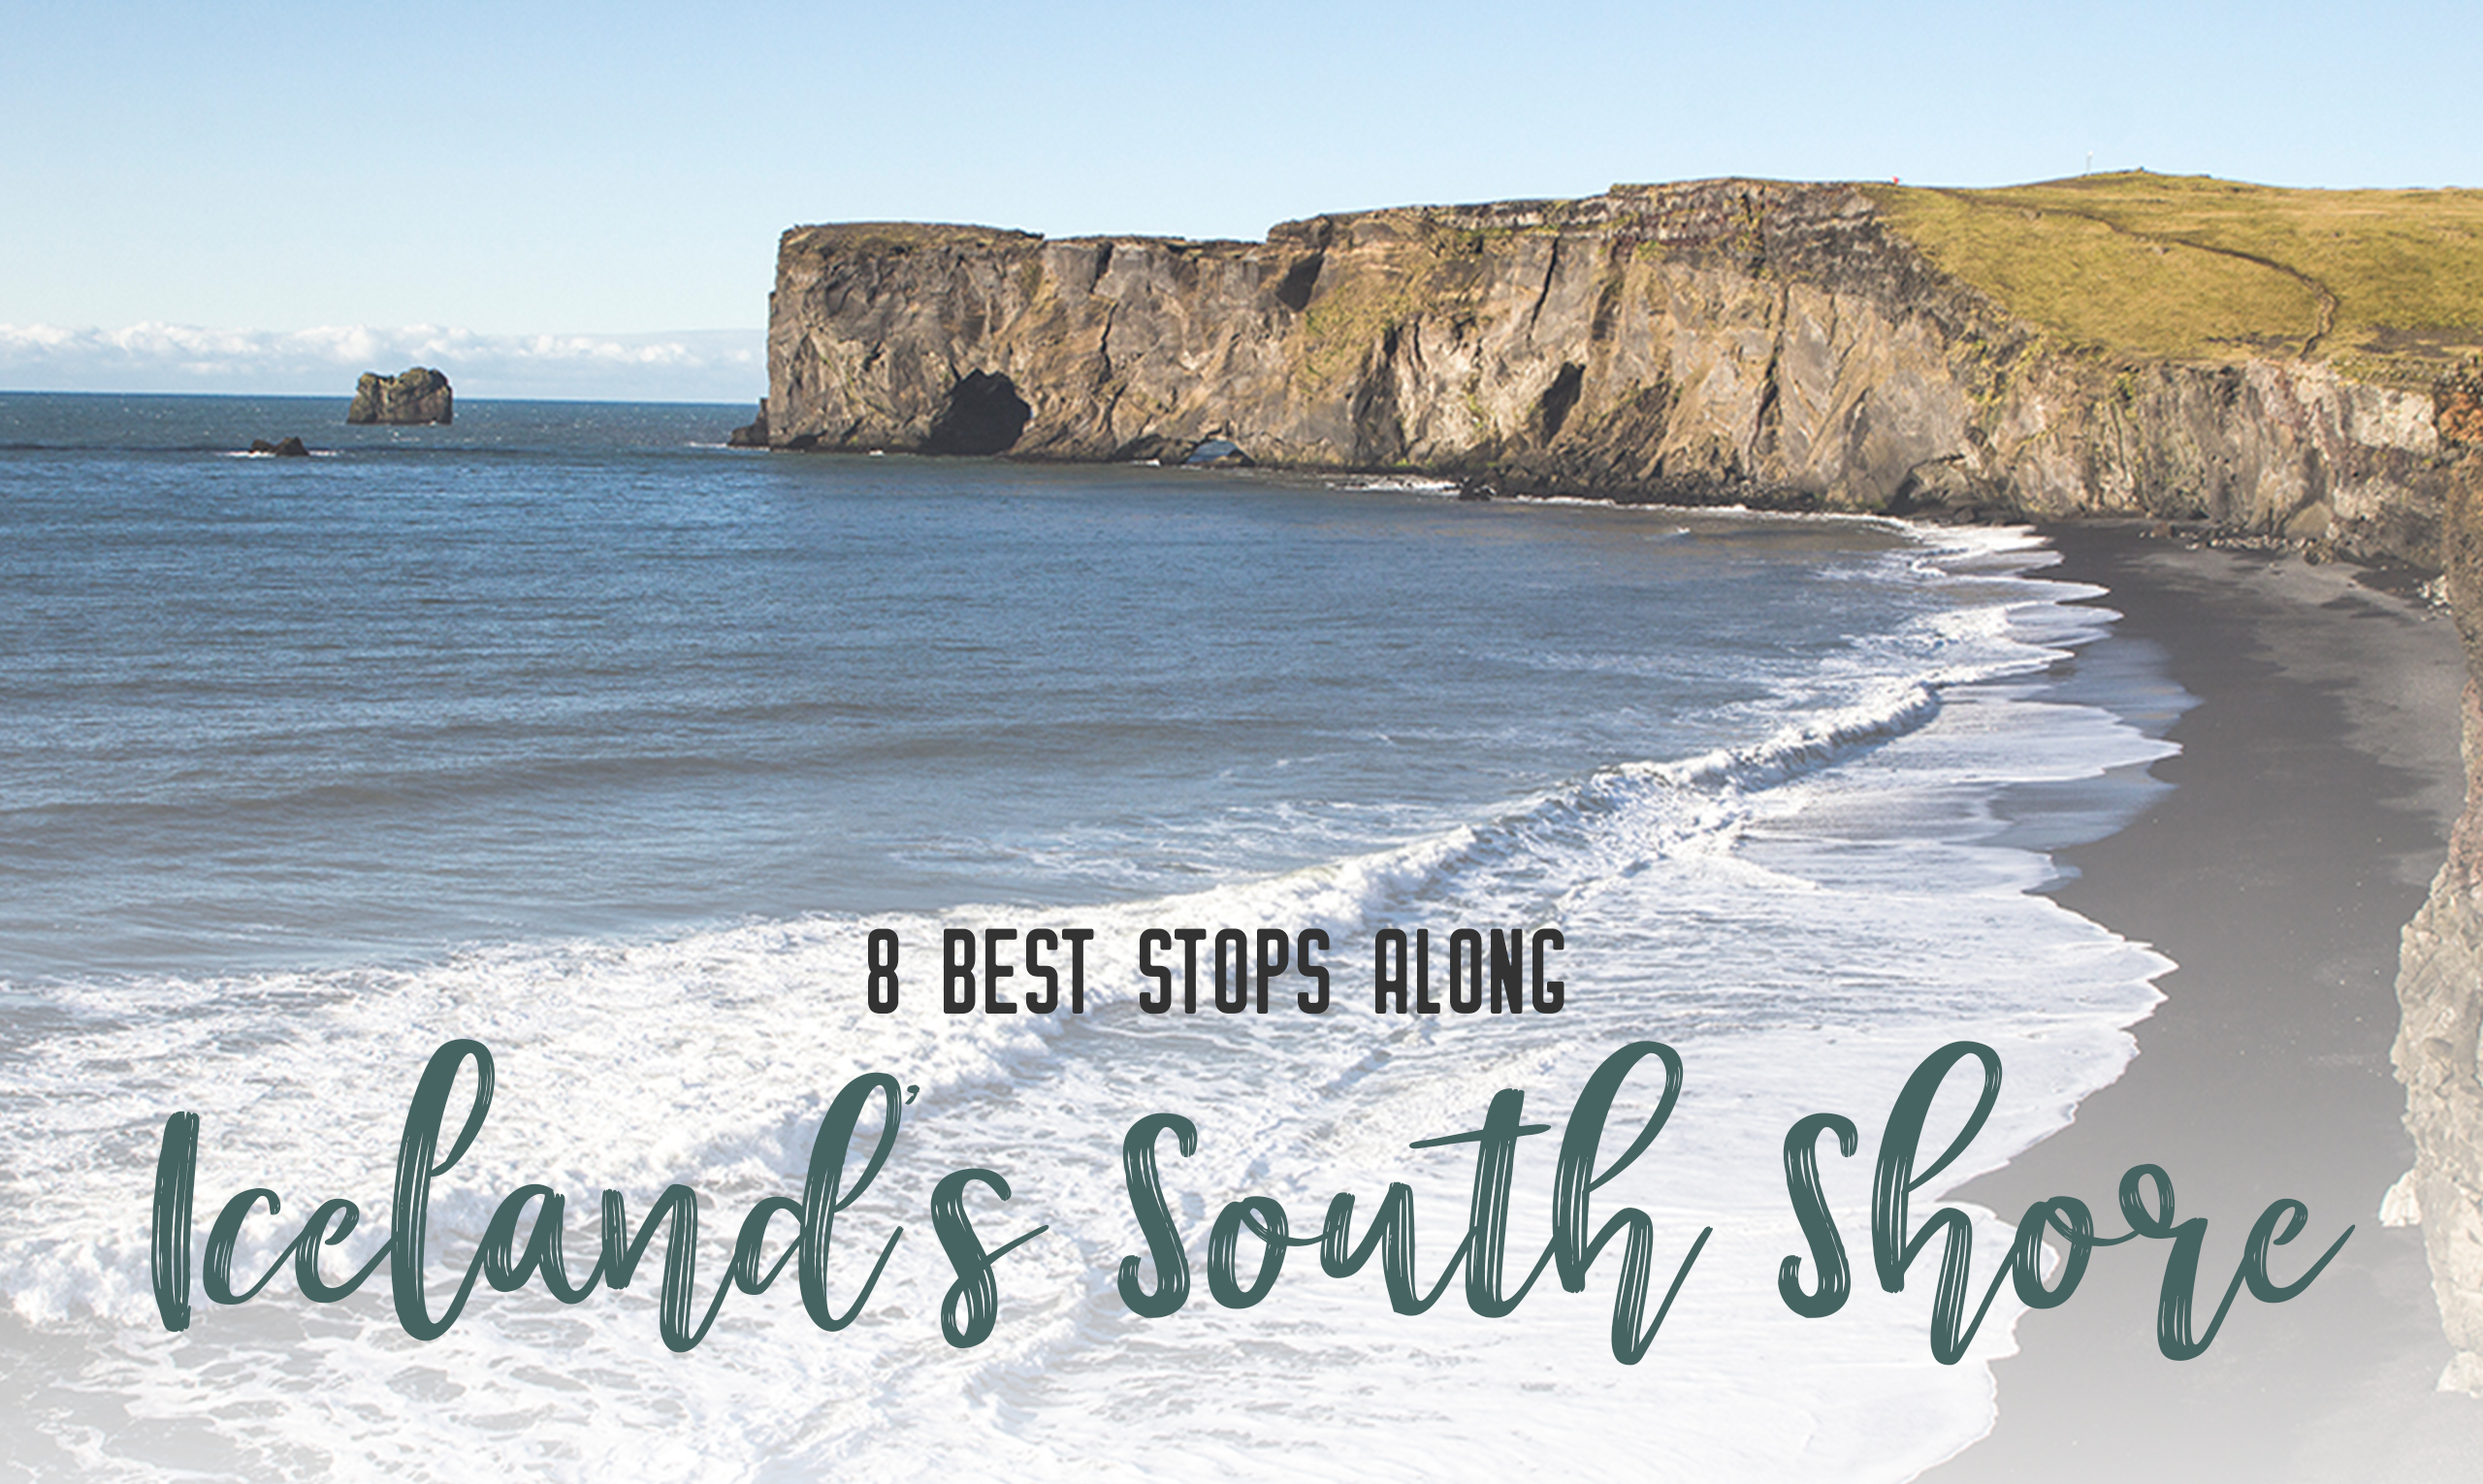 8 best stops along Iceland's south shore